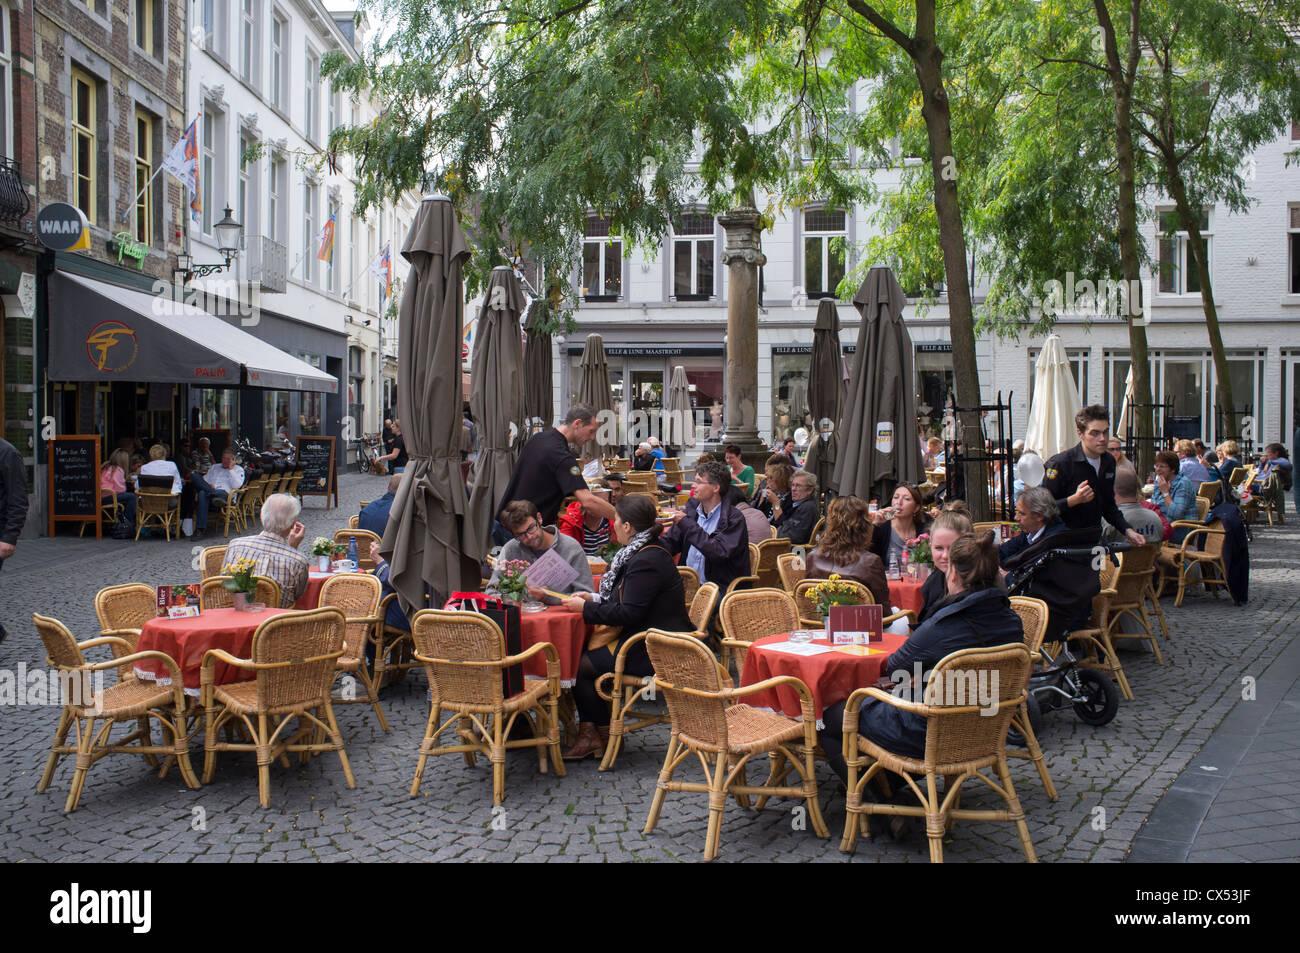 Busy cafes in pretty square in Maastricht Netherlands - Stock Image